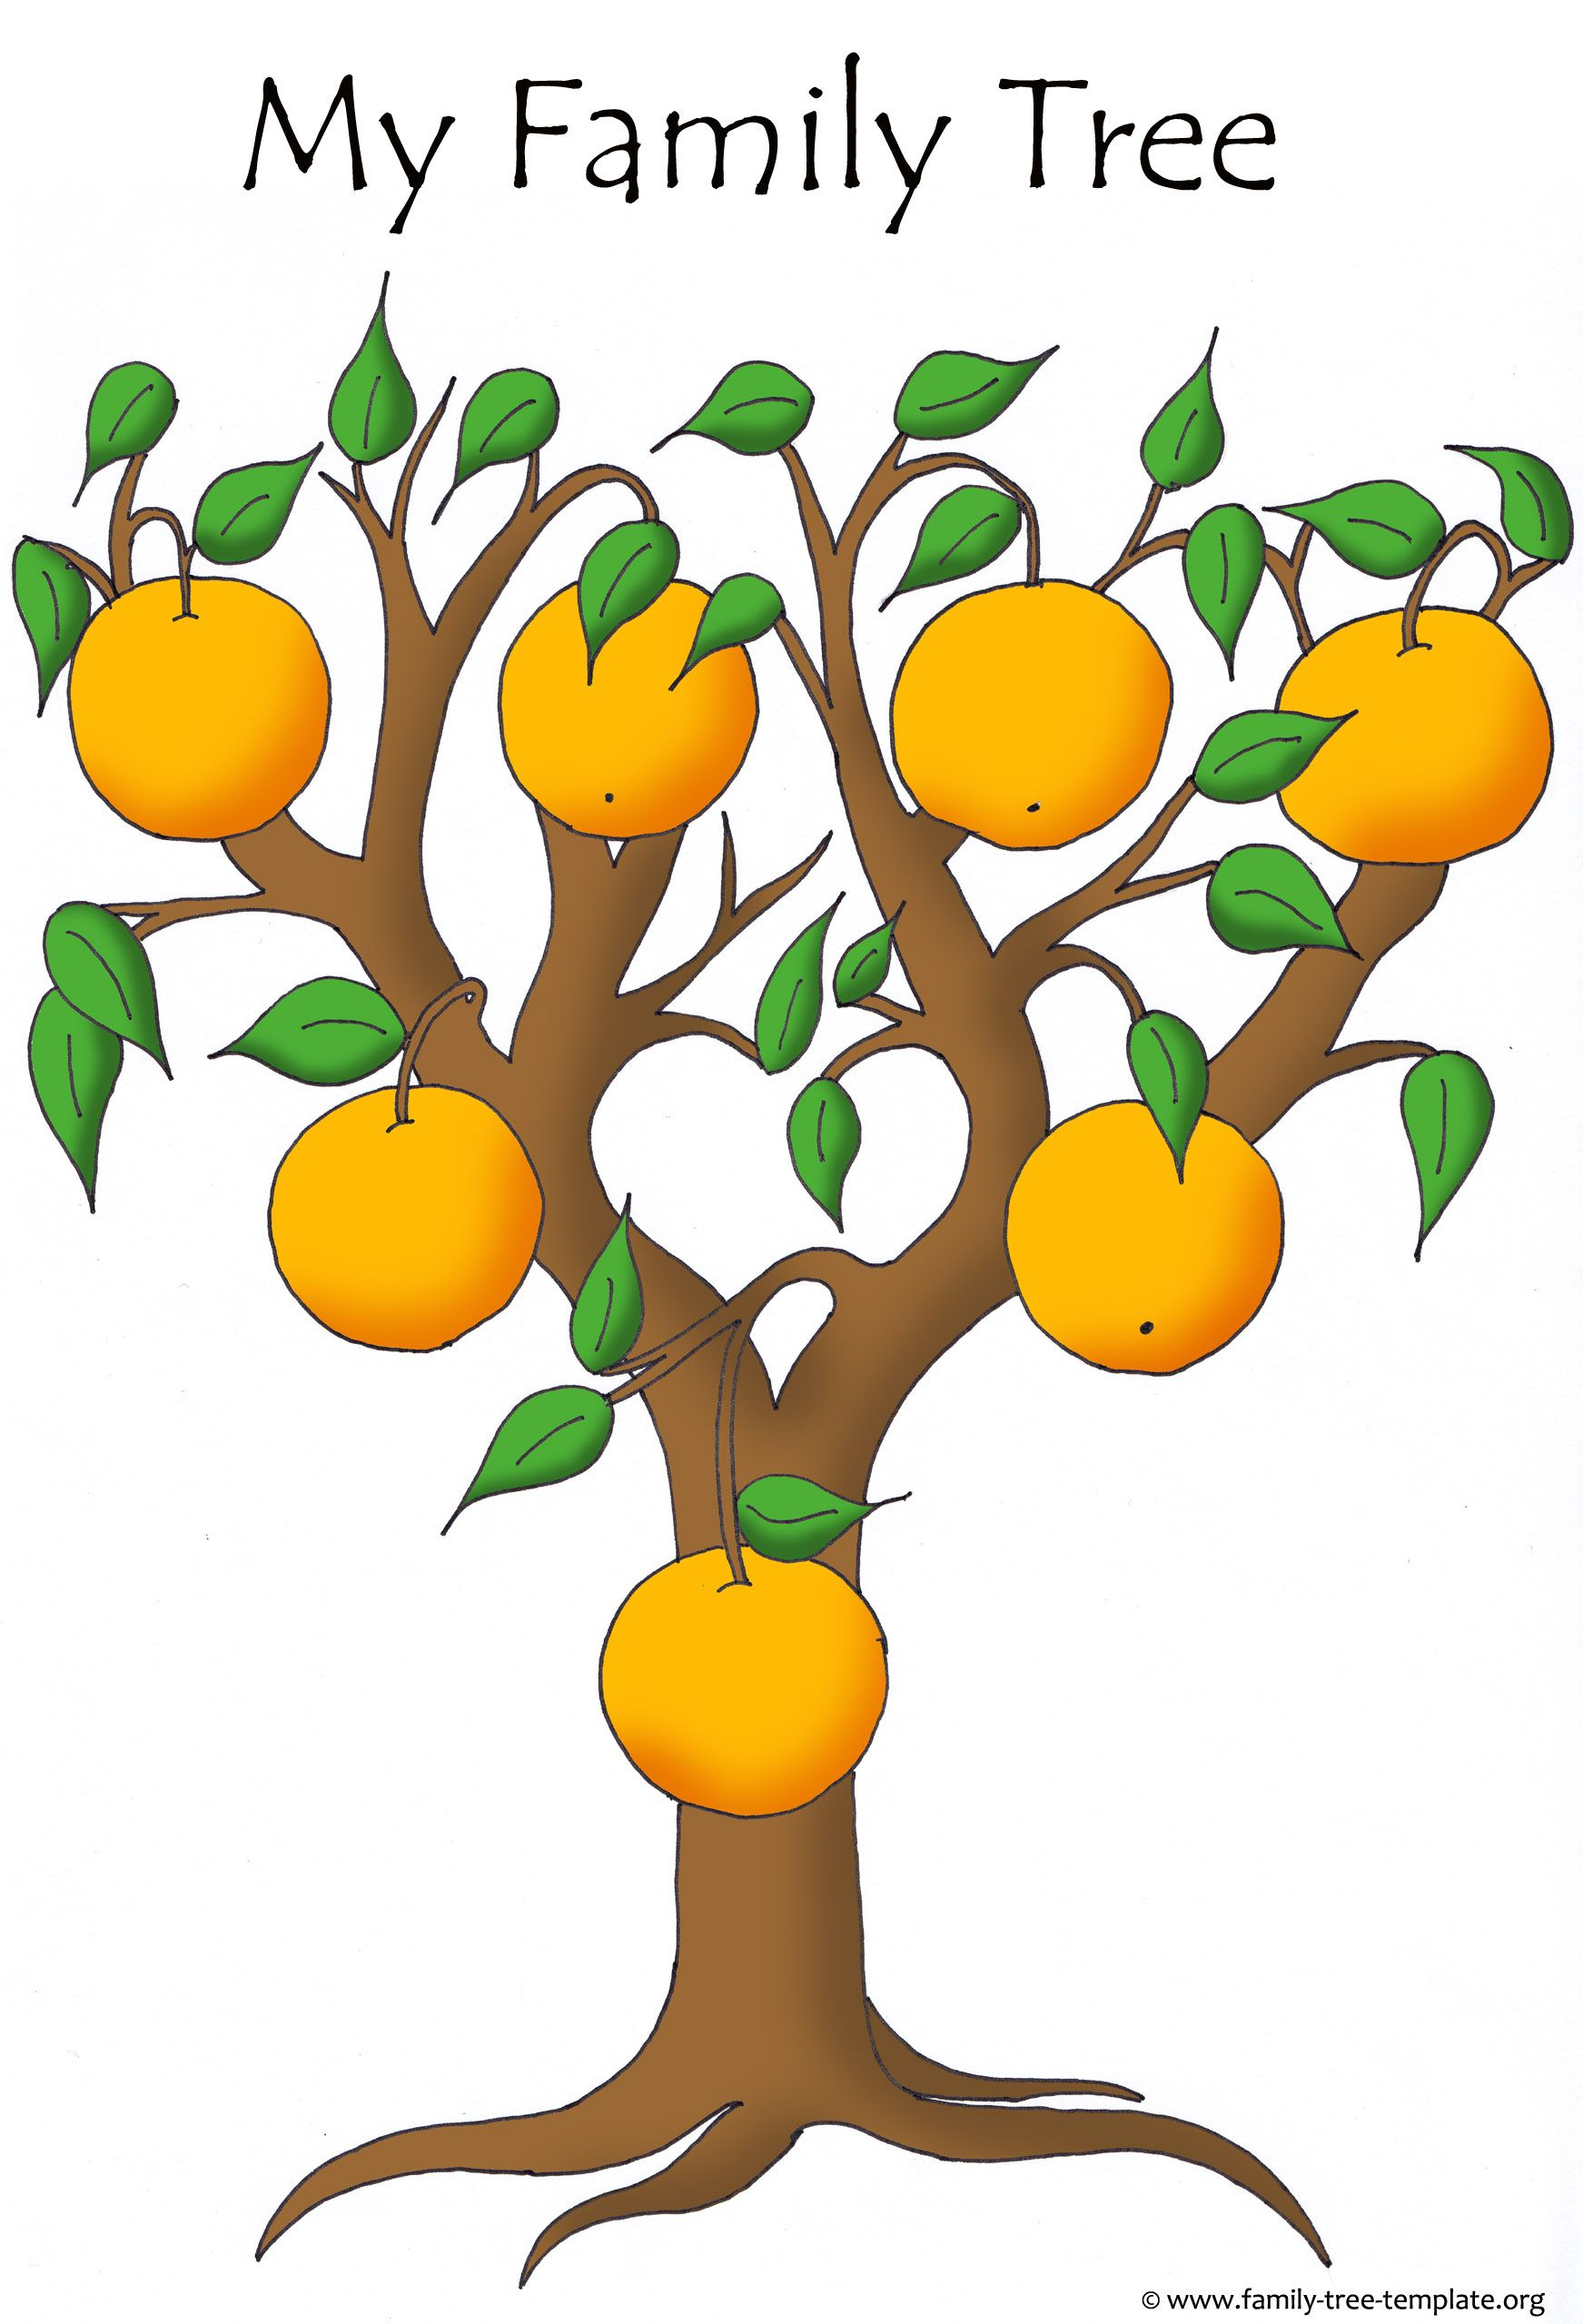 Easy Family Tree To Fill Out For Smaller Children Orange